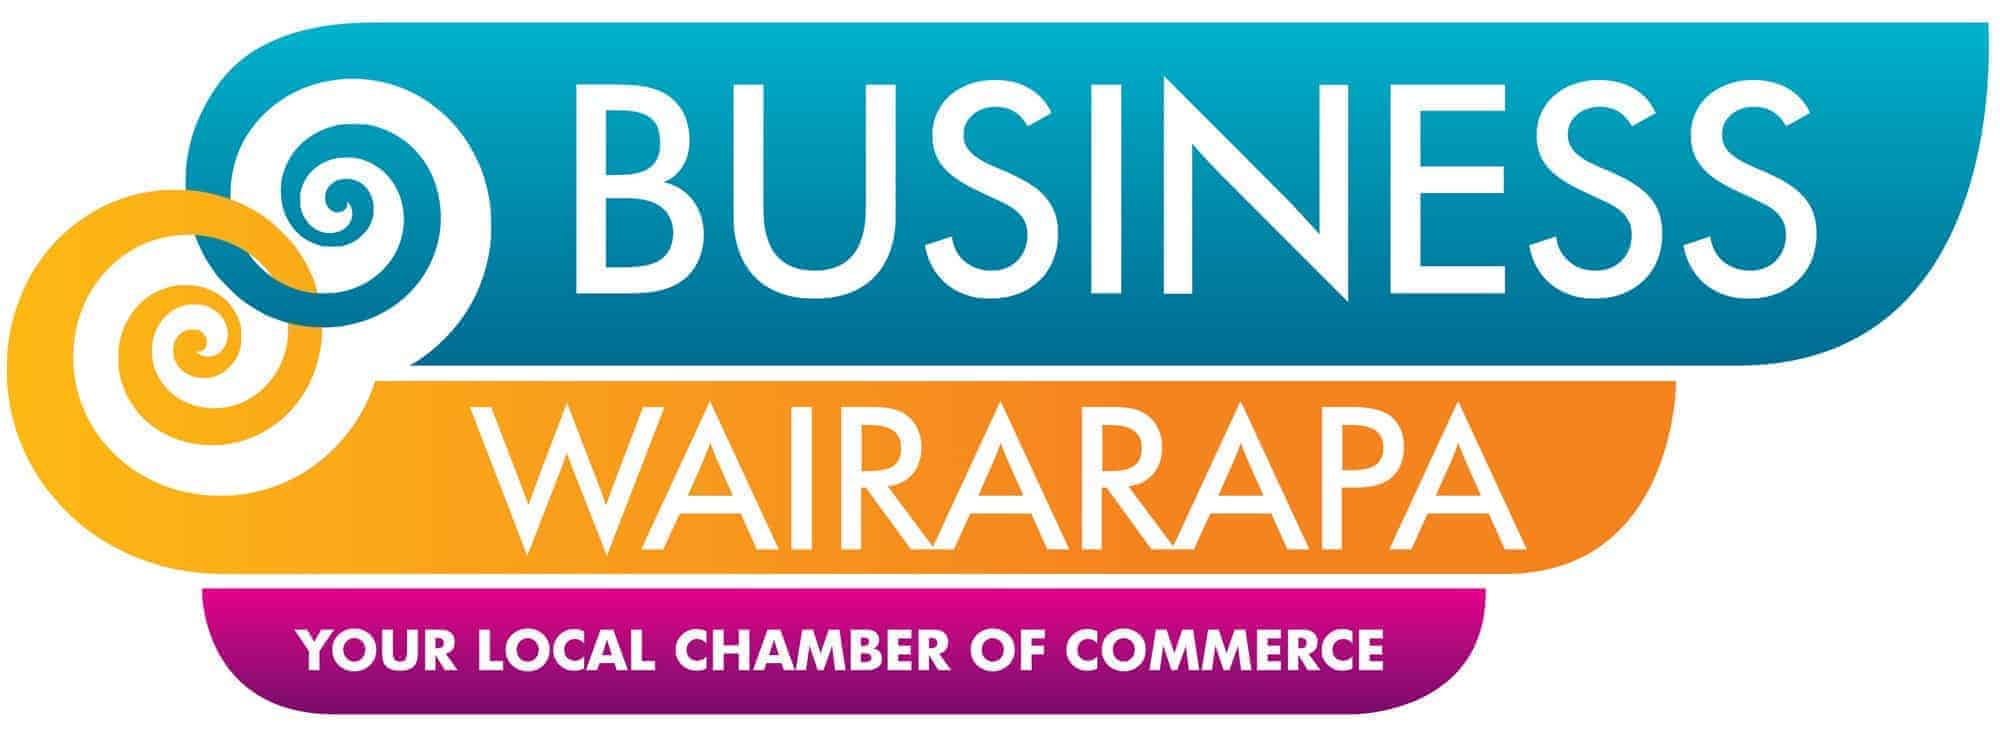 Wairarapa Chamber of Commerce